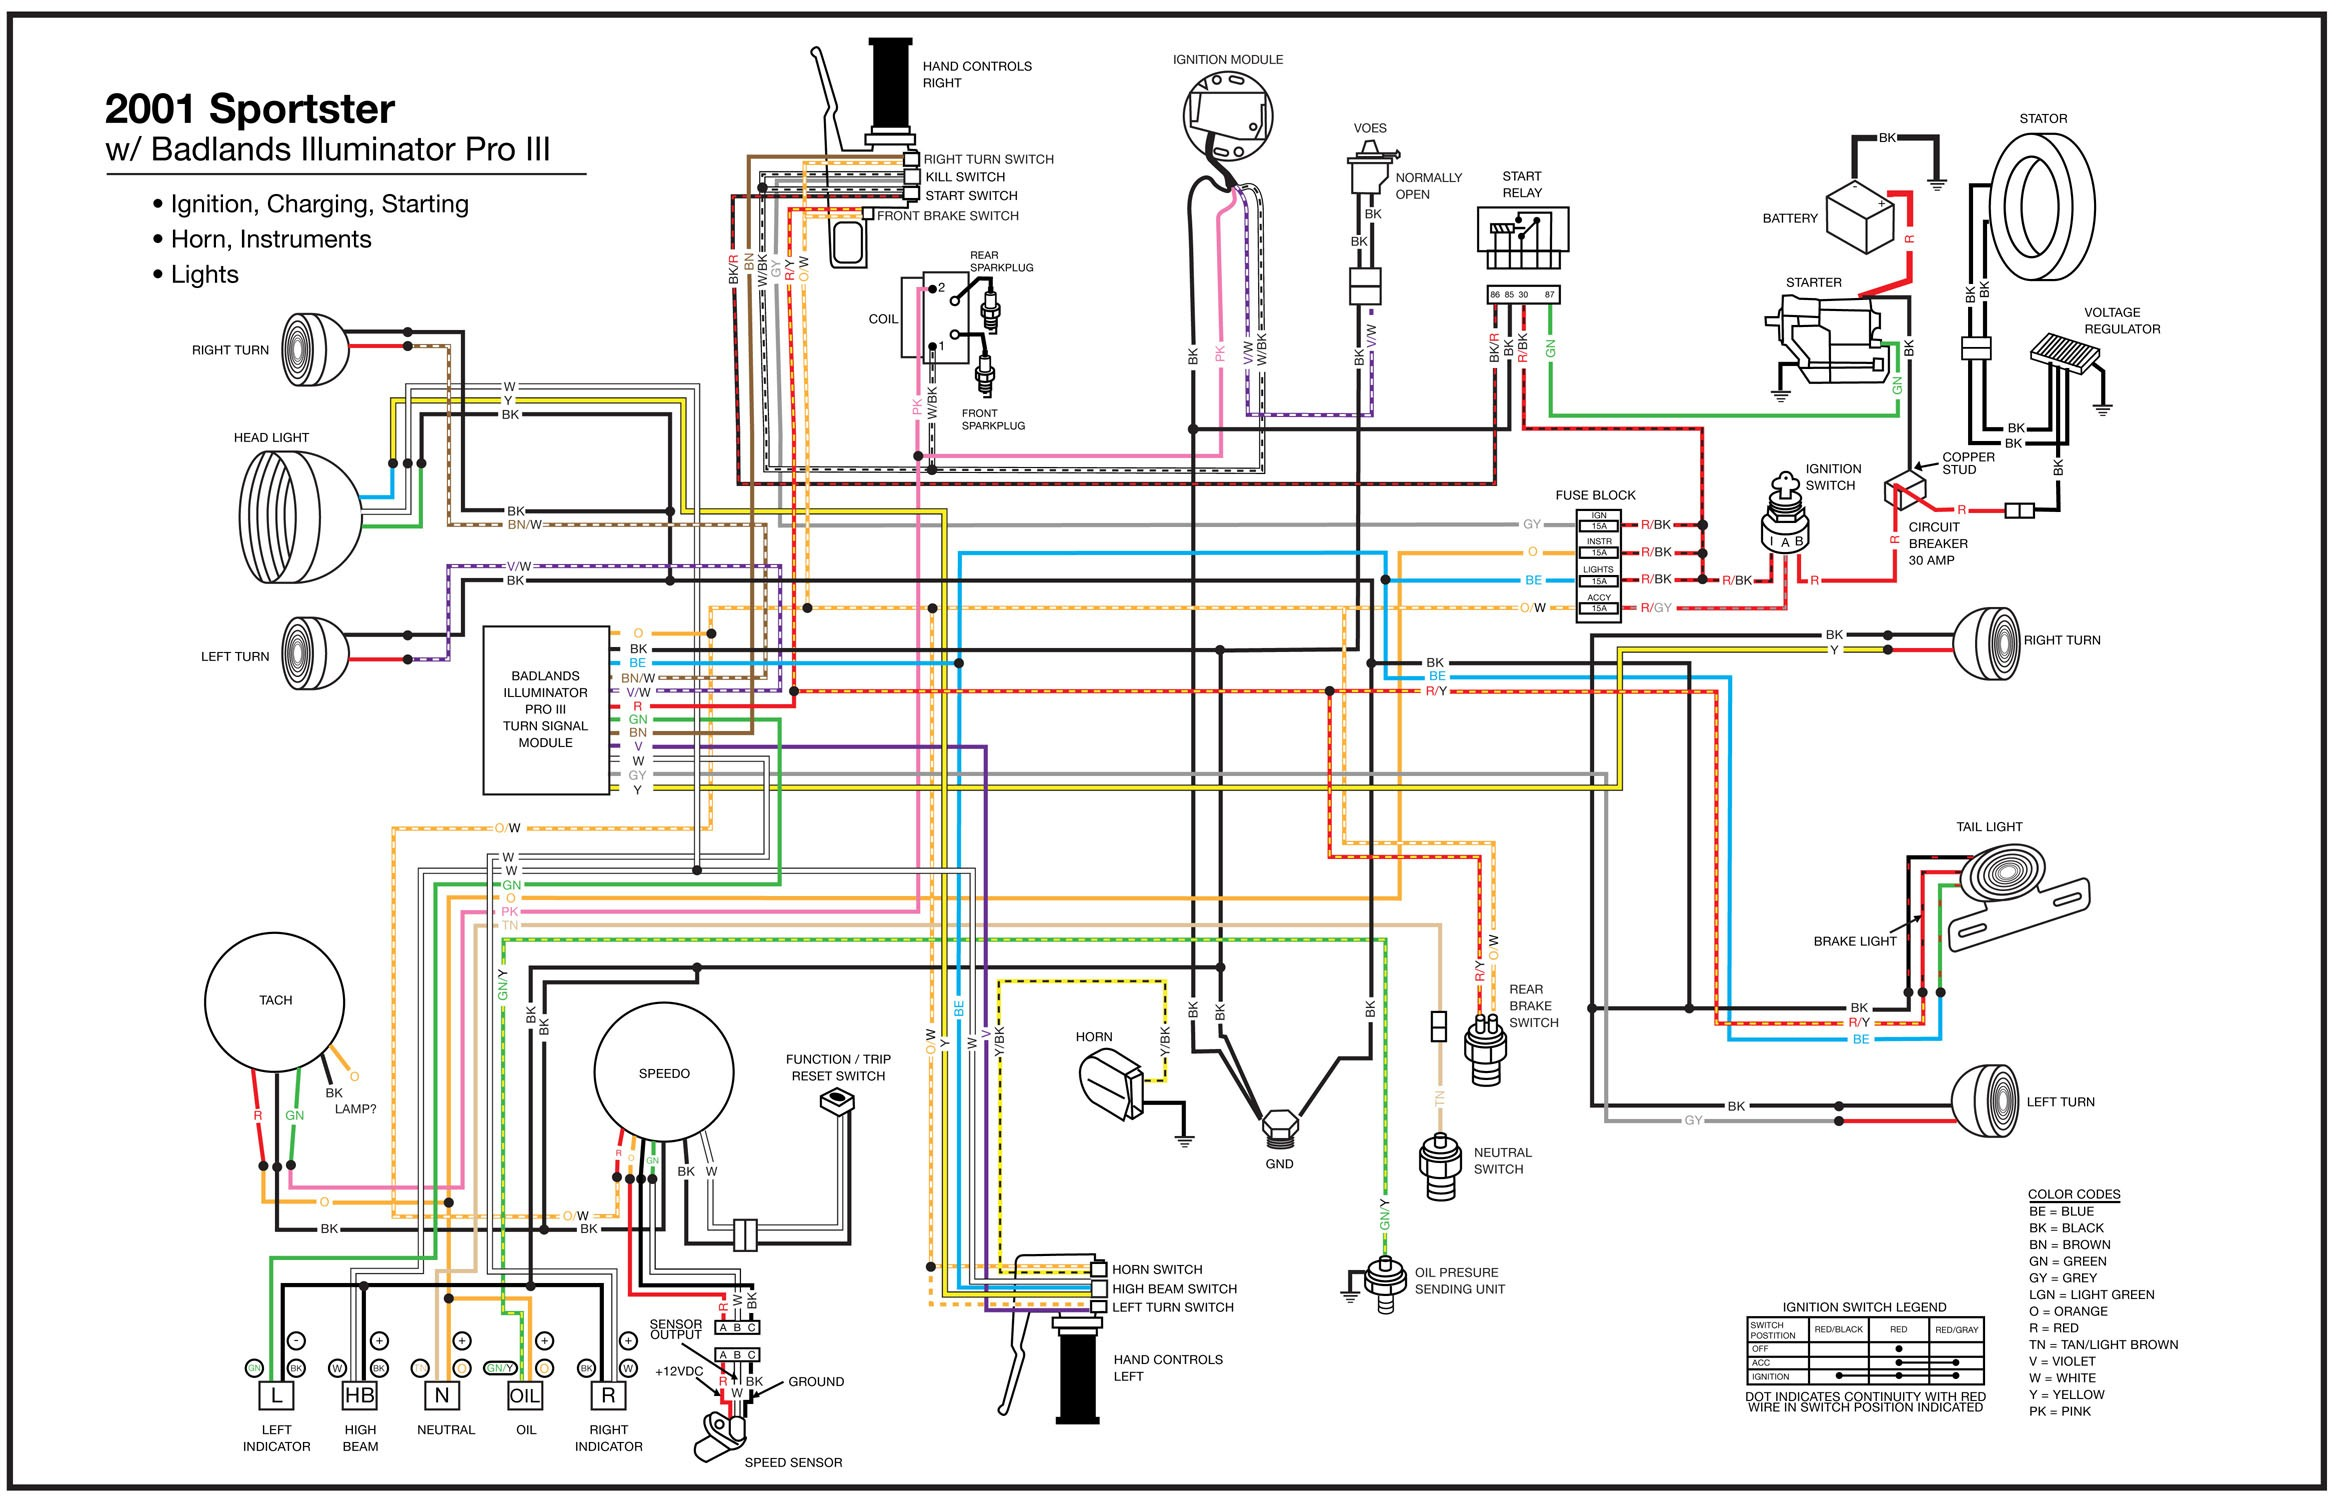 DIAGRAM] 2000 Harley Davidson Fxr Wiring Diagram FULL Version HD Quality Wiring  Diagram - SITSTANDCONVERSION.PAT-PIZZA.FRPat'Pizza